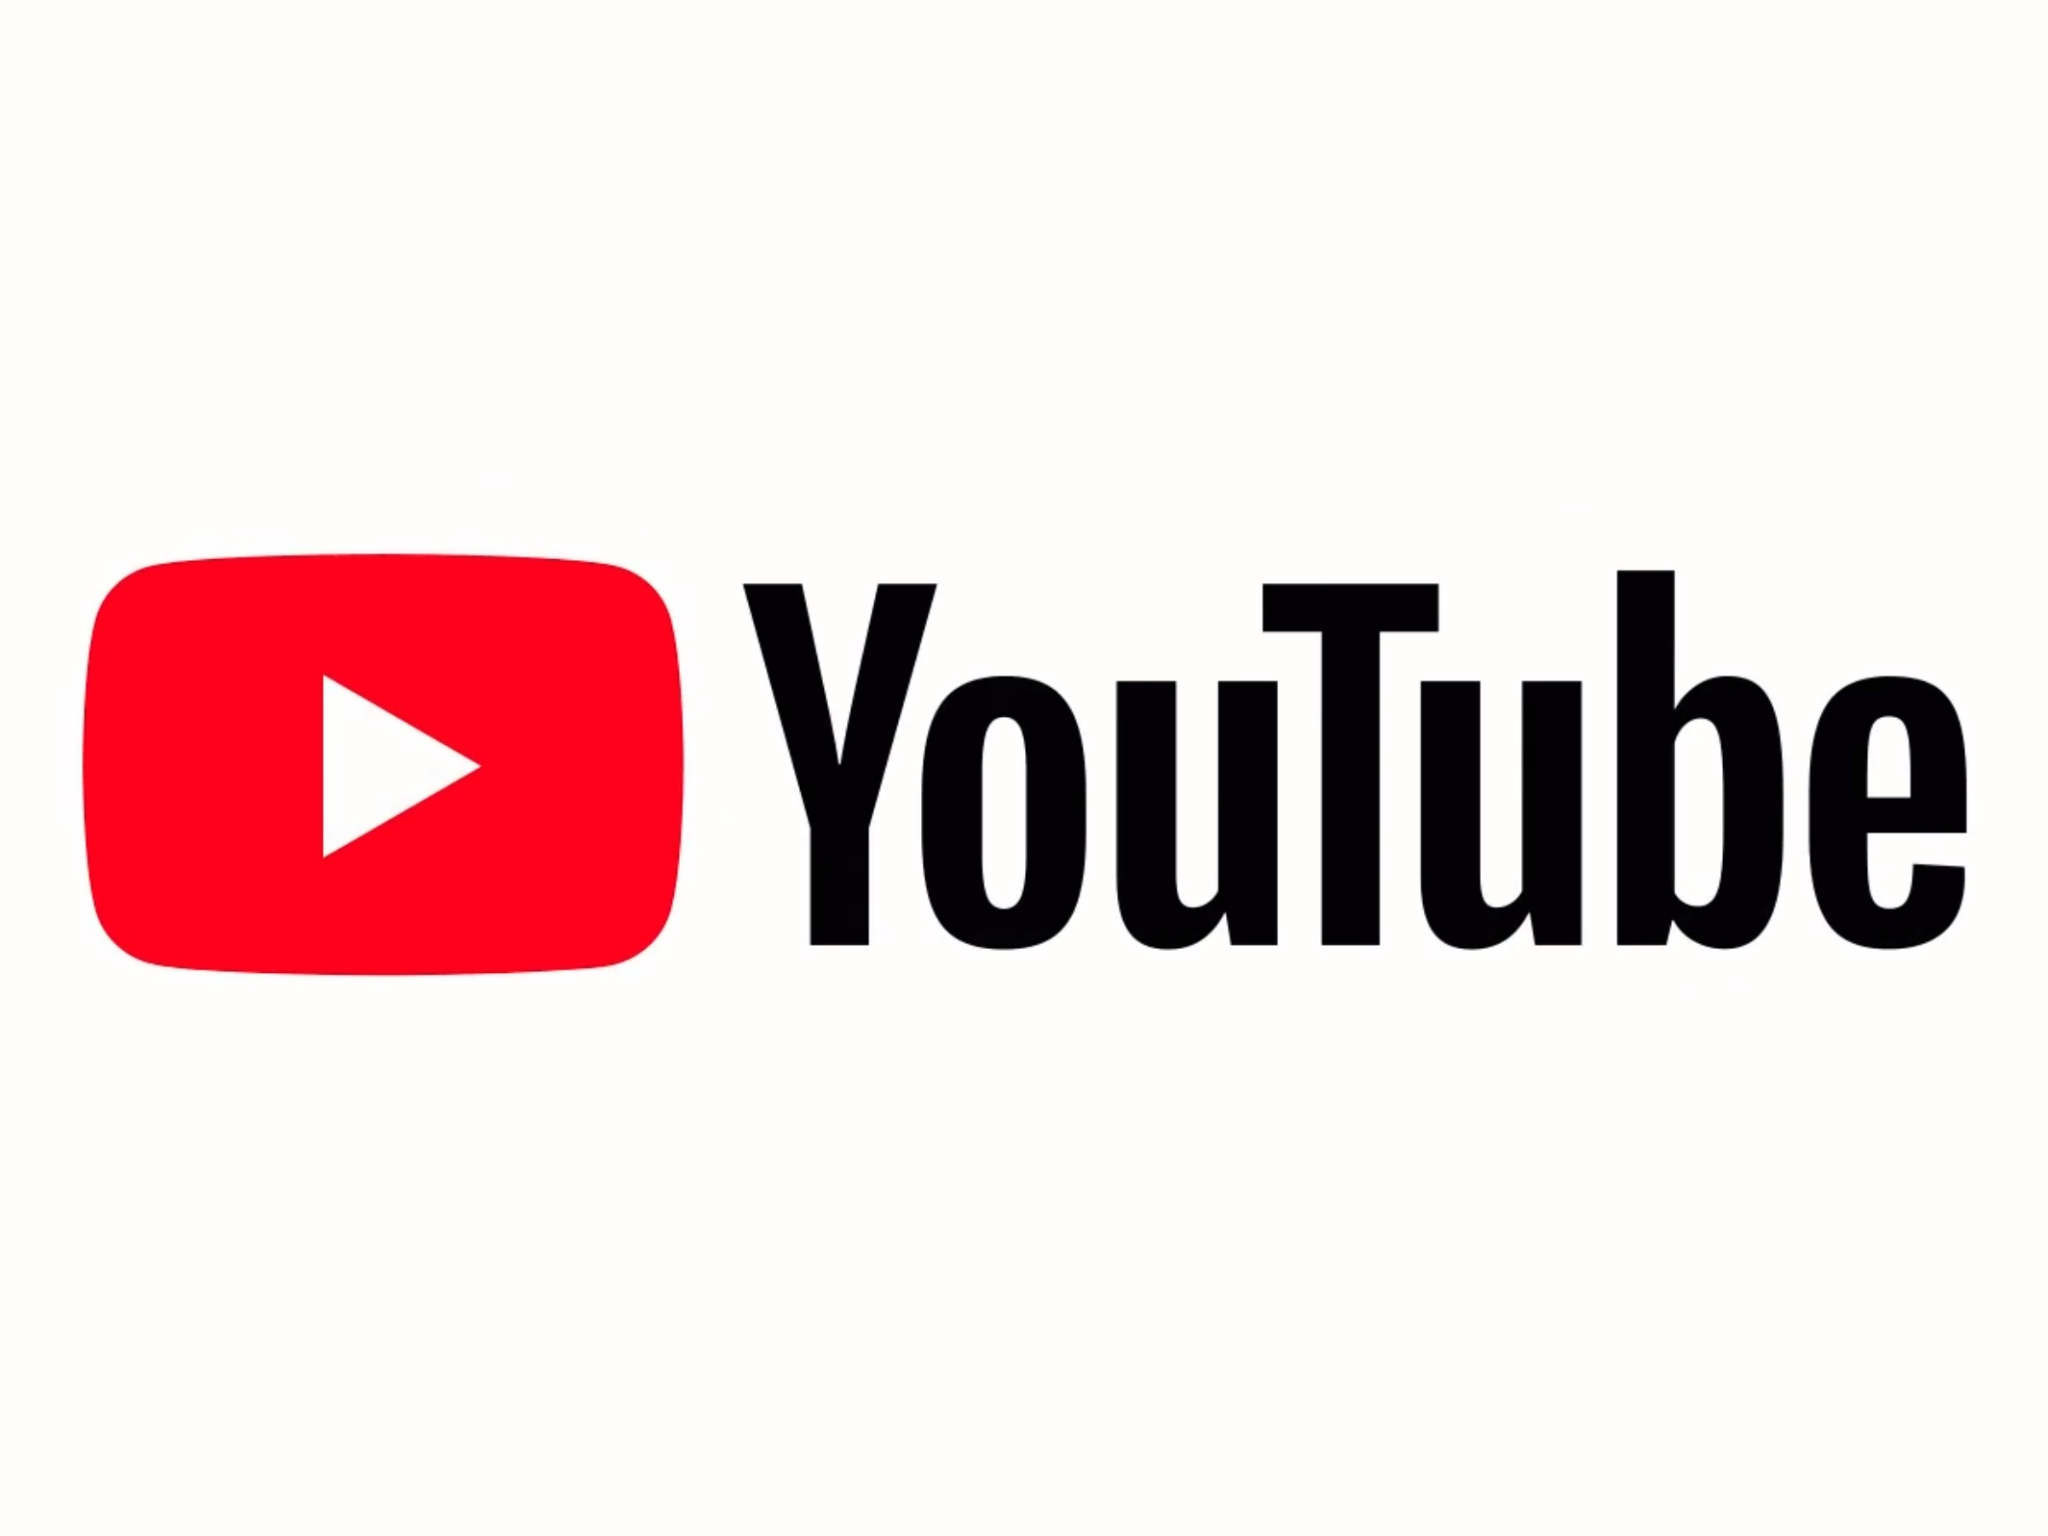 YouTube redesign: New logo, Dark Theme and user interface ...